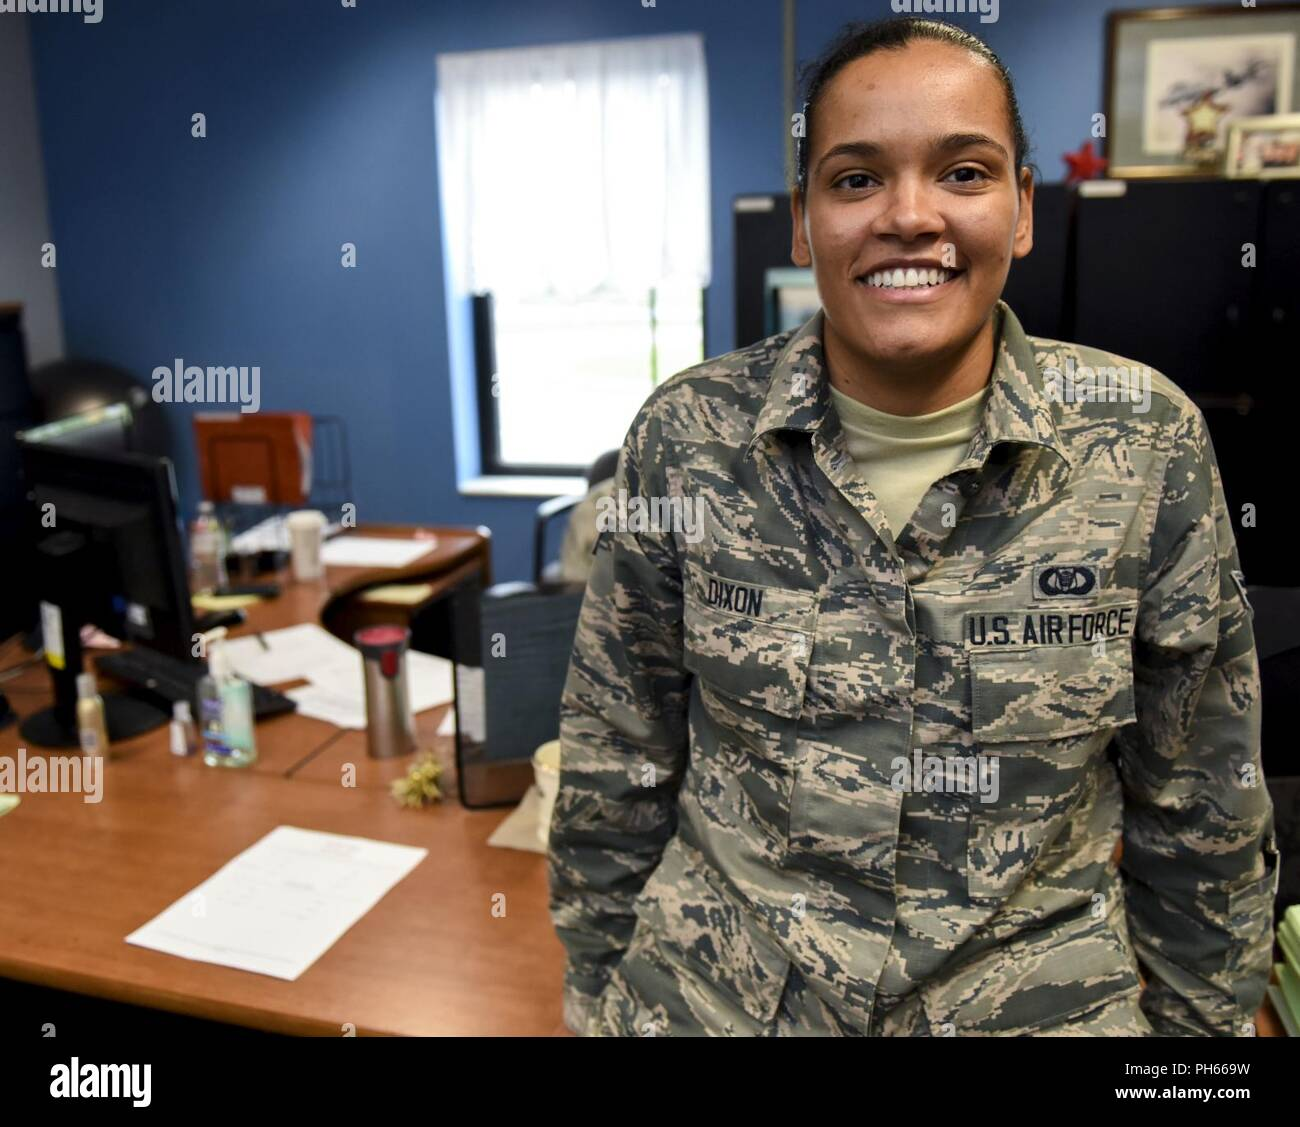 Aviation Resource Management Apprentice Airman 1st Class Carlisa Dixon is a drill status Guardsman celebrating her one year anniversary in the Air National Guard today, June 27, 2018. When Dixon is not assigned to the 171st Air Refueling Wing Operations Support Squadron, she works as a substitute teacher with Steel Valley High School. She attended college on multiple full scholarships for basketball at California University of Pennsylvania and Slippery Rock University where she graduated with an associates degree in Liberal Arts and a Bachelors in Science. Stock Photo